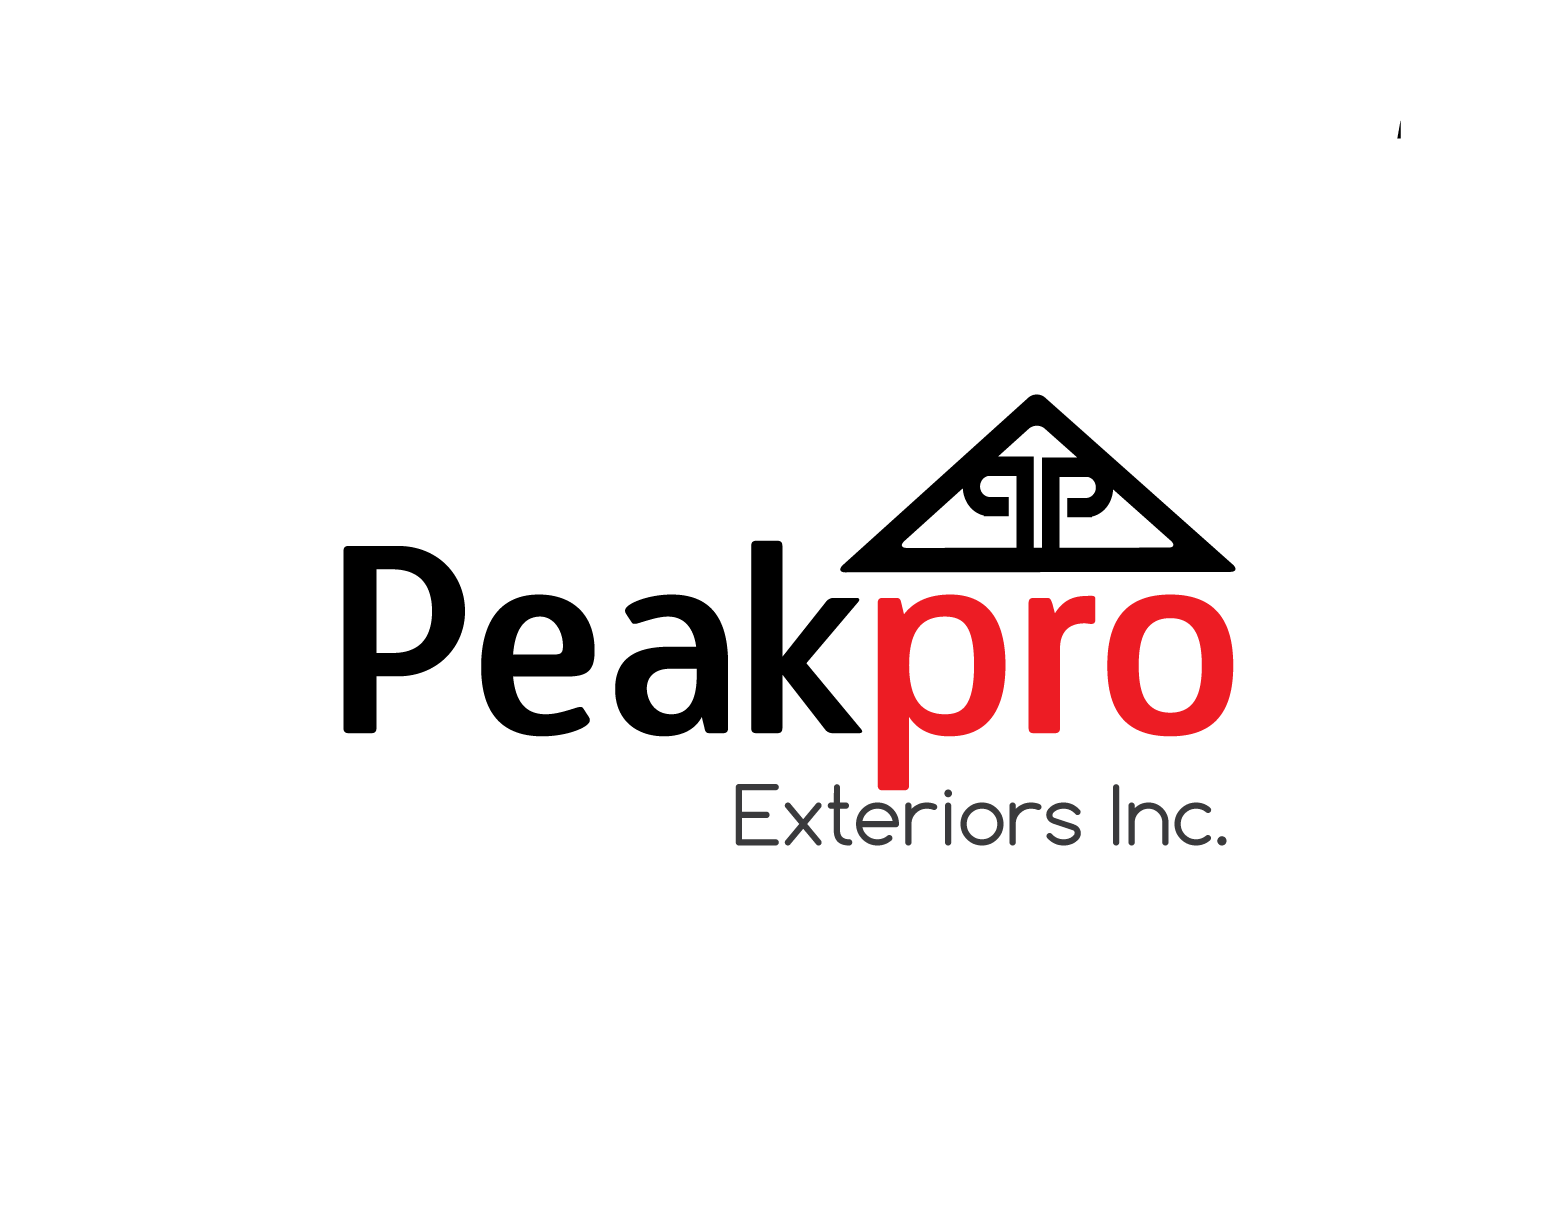 Logo Design by 354studio - Entry No. 69 in the Logo Design Contest Captivating Logo Design for Peakpro Exteriors Inc..